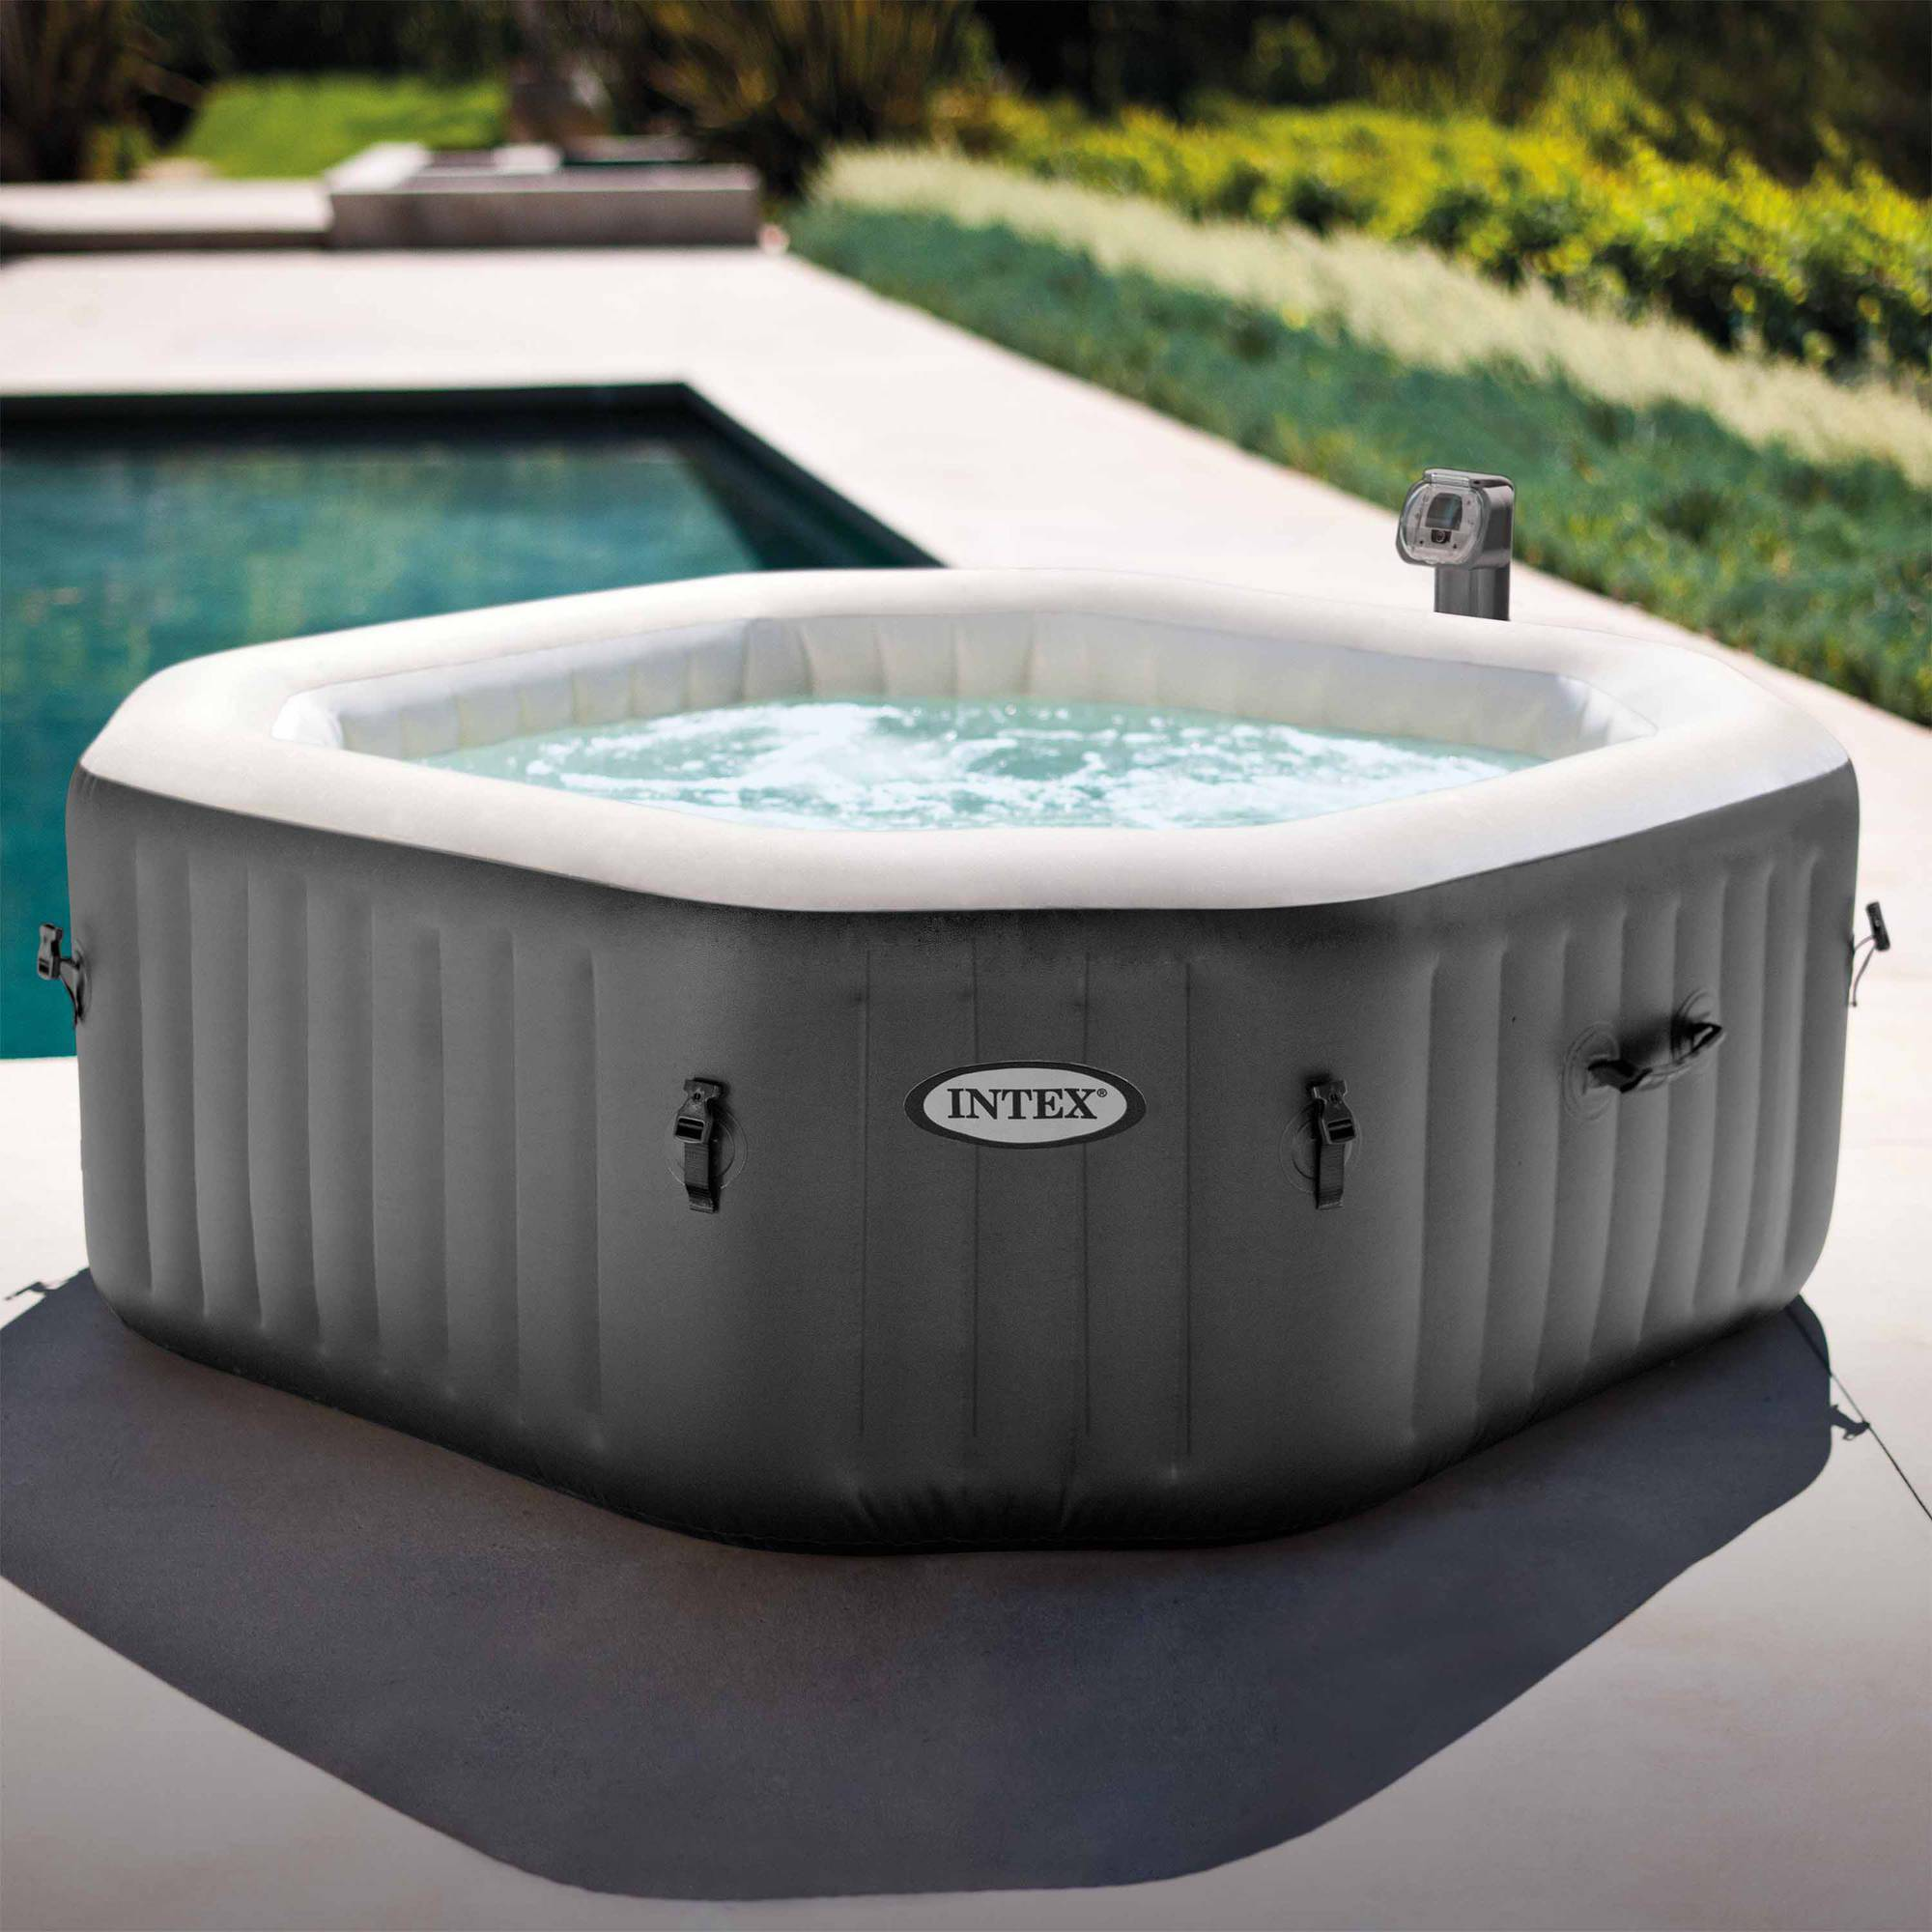 Intex 120 Bubble Jets 4Person Octagonal Portable Inflatable Hot Tub